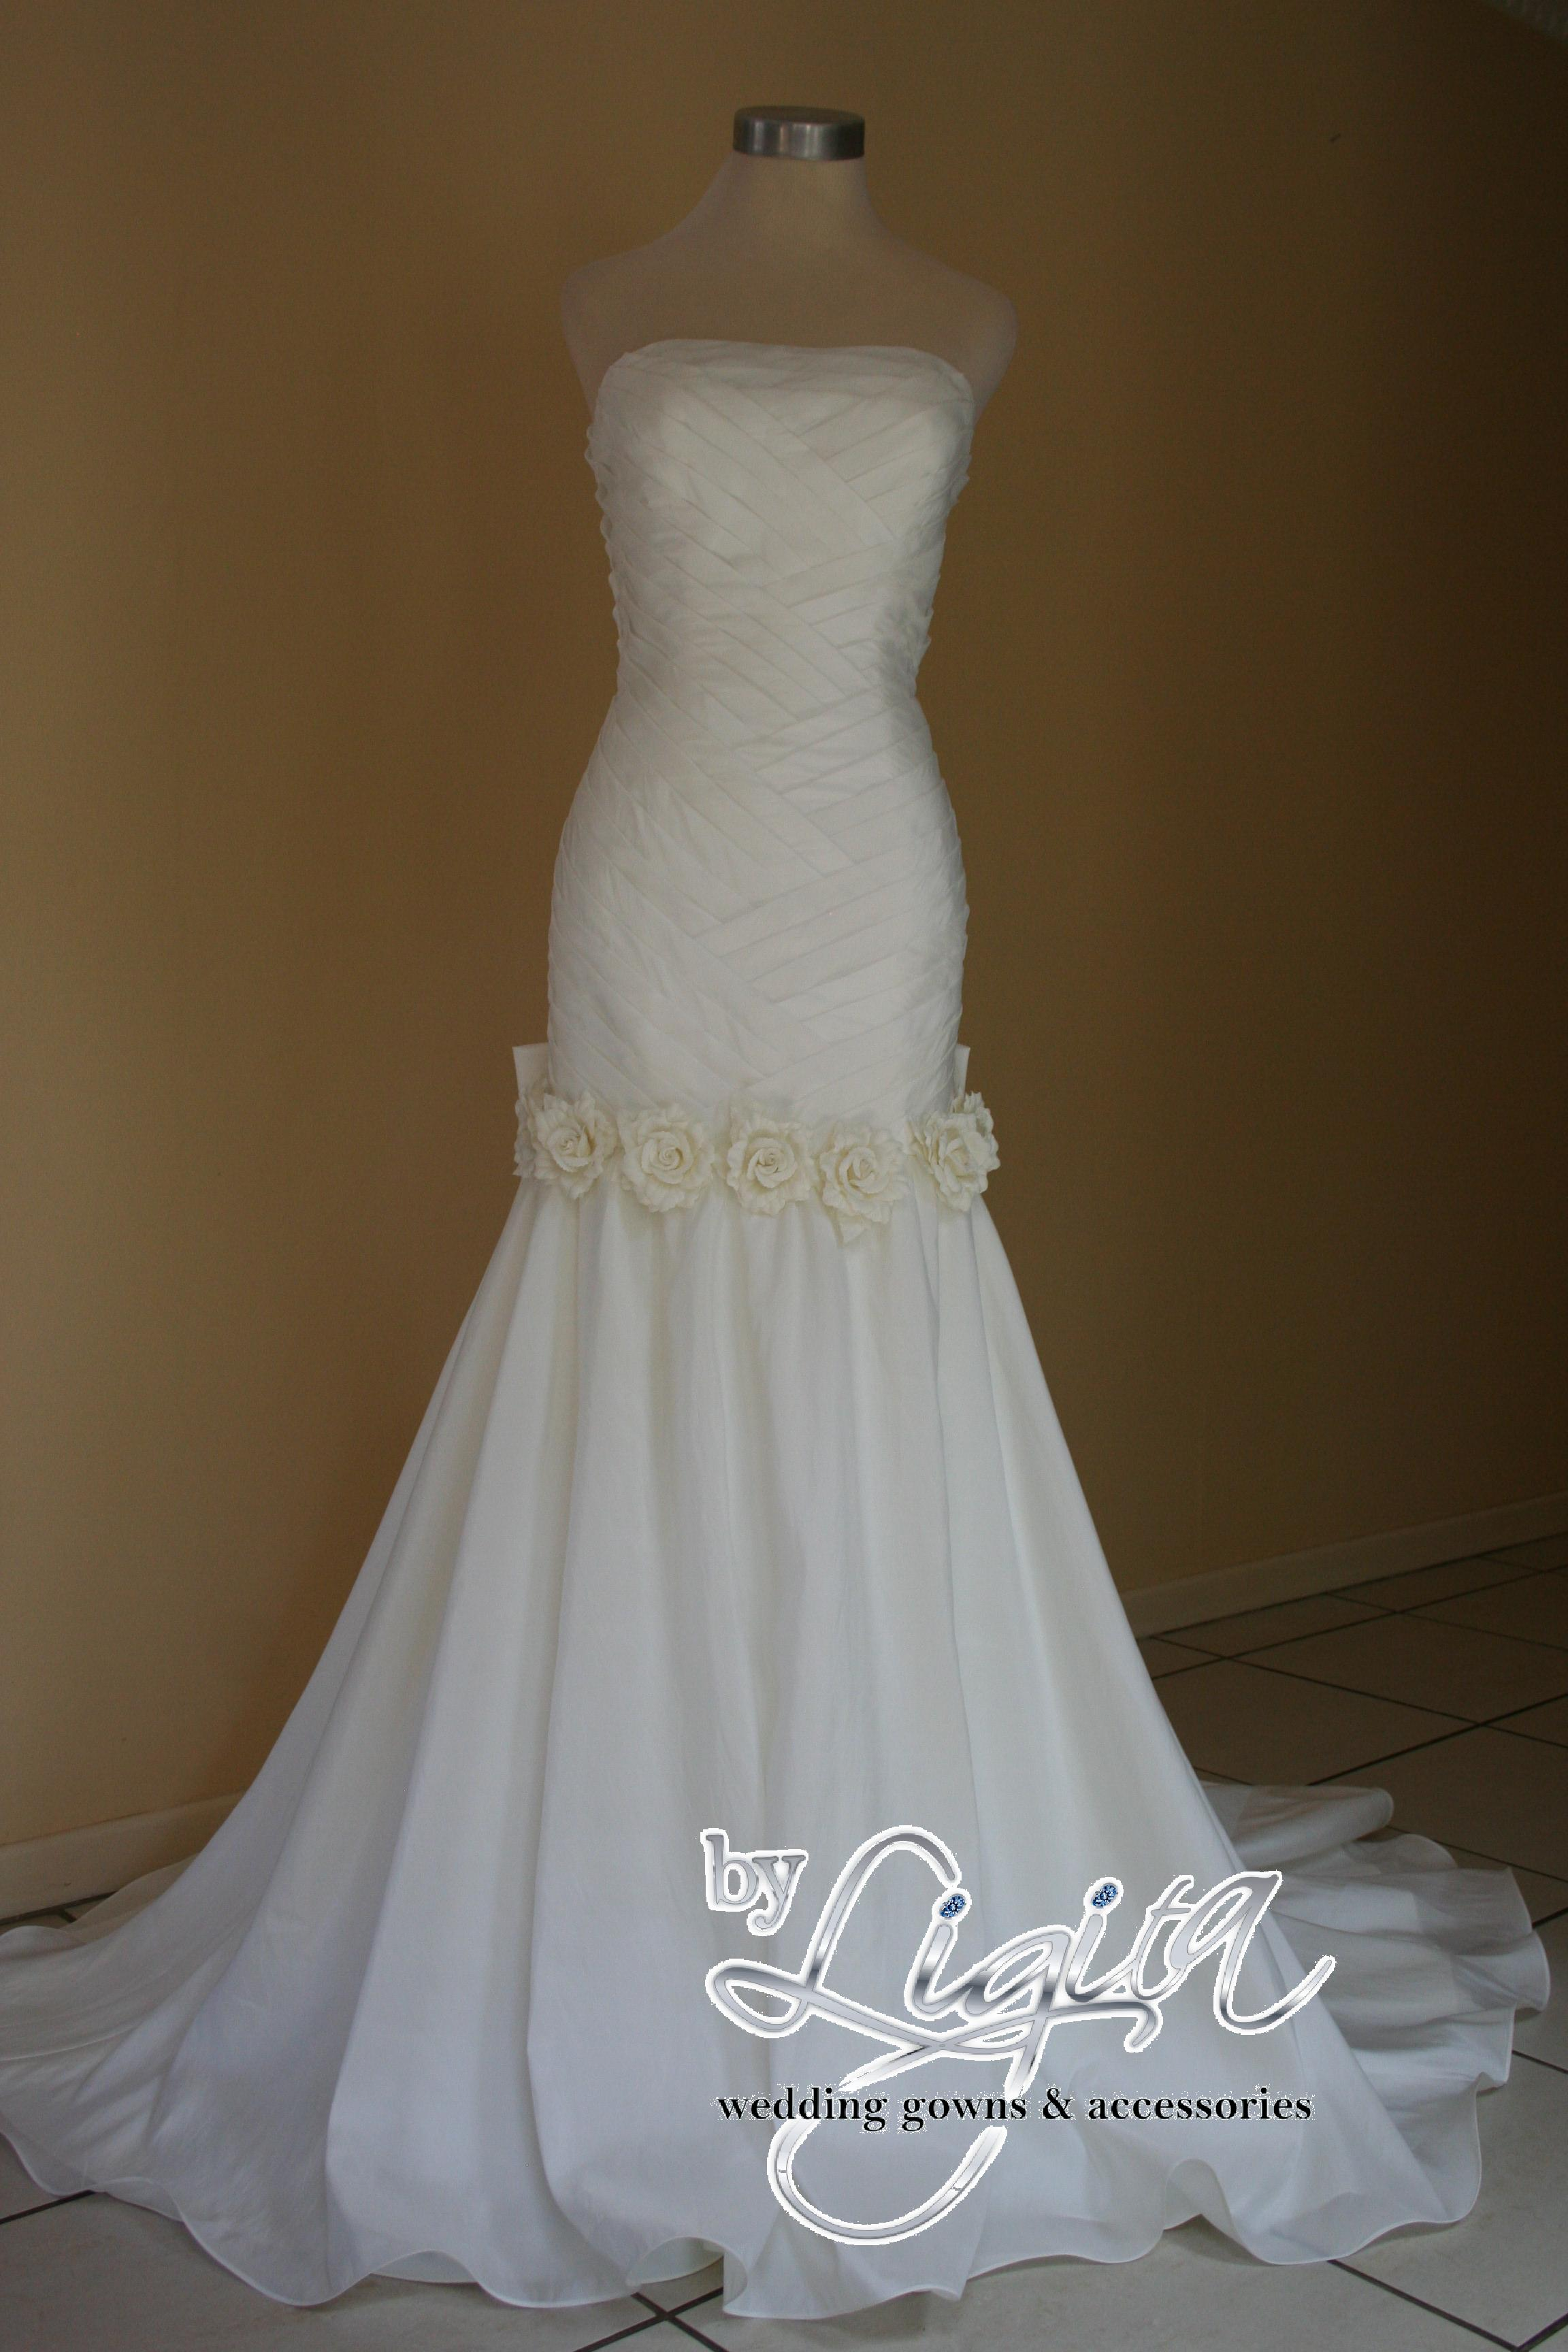 By ligita wedding gowns accessories accessories for Best website for wedding dresses